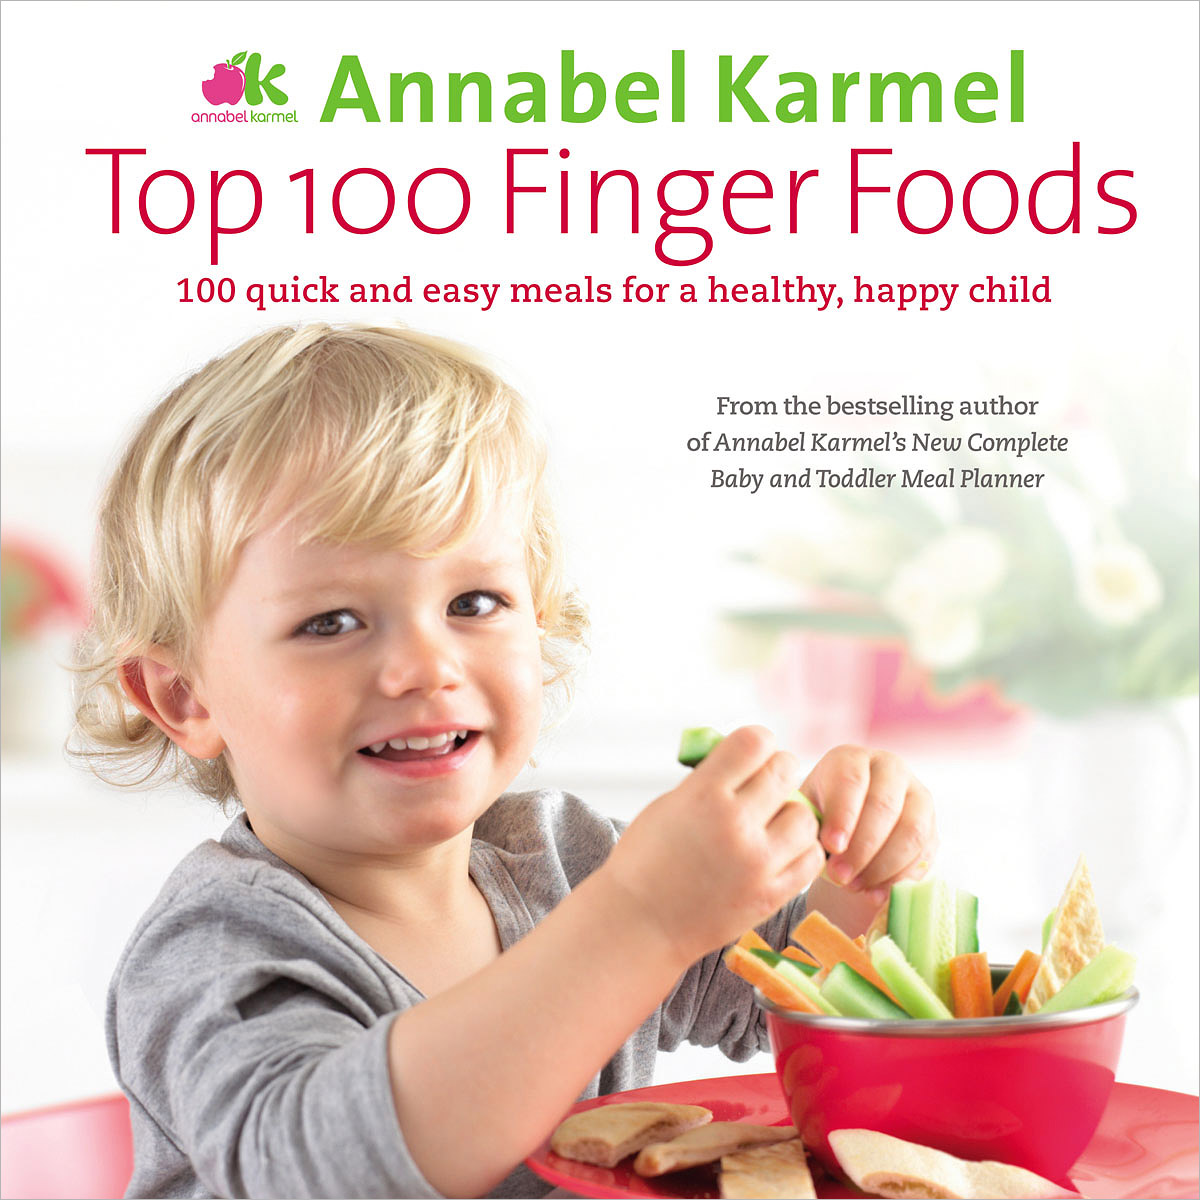 Top 100 Finger Foods: 100 Quick and Easy Meals for a Healthy, Happy Child cooking well healthy kids easy meals for happy toddlers